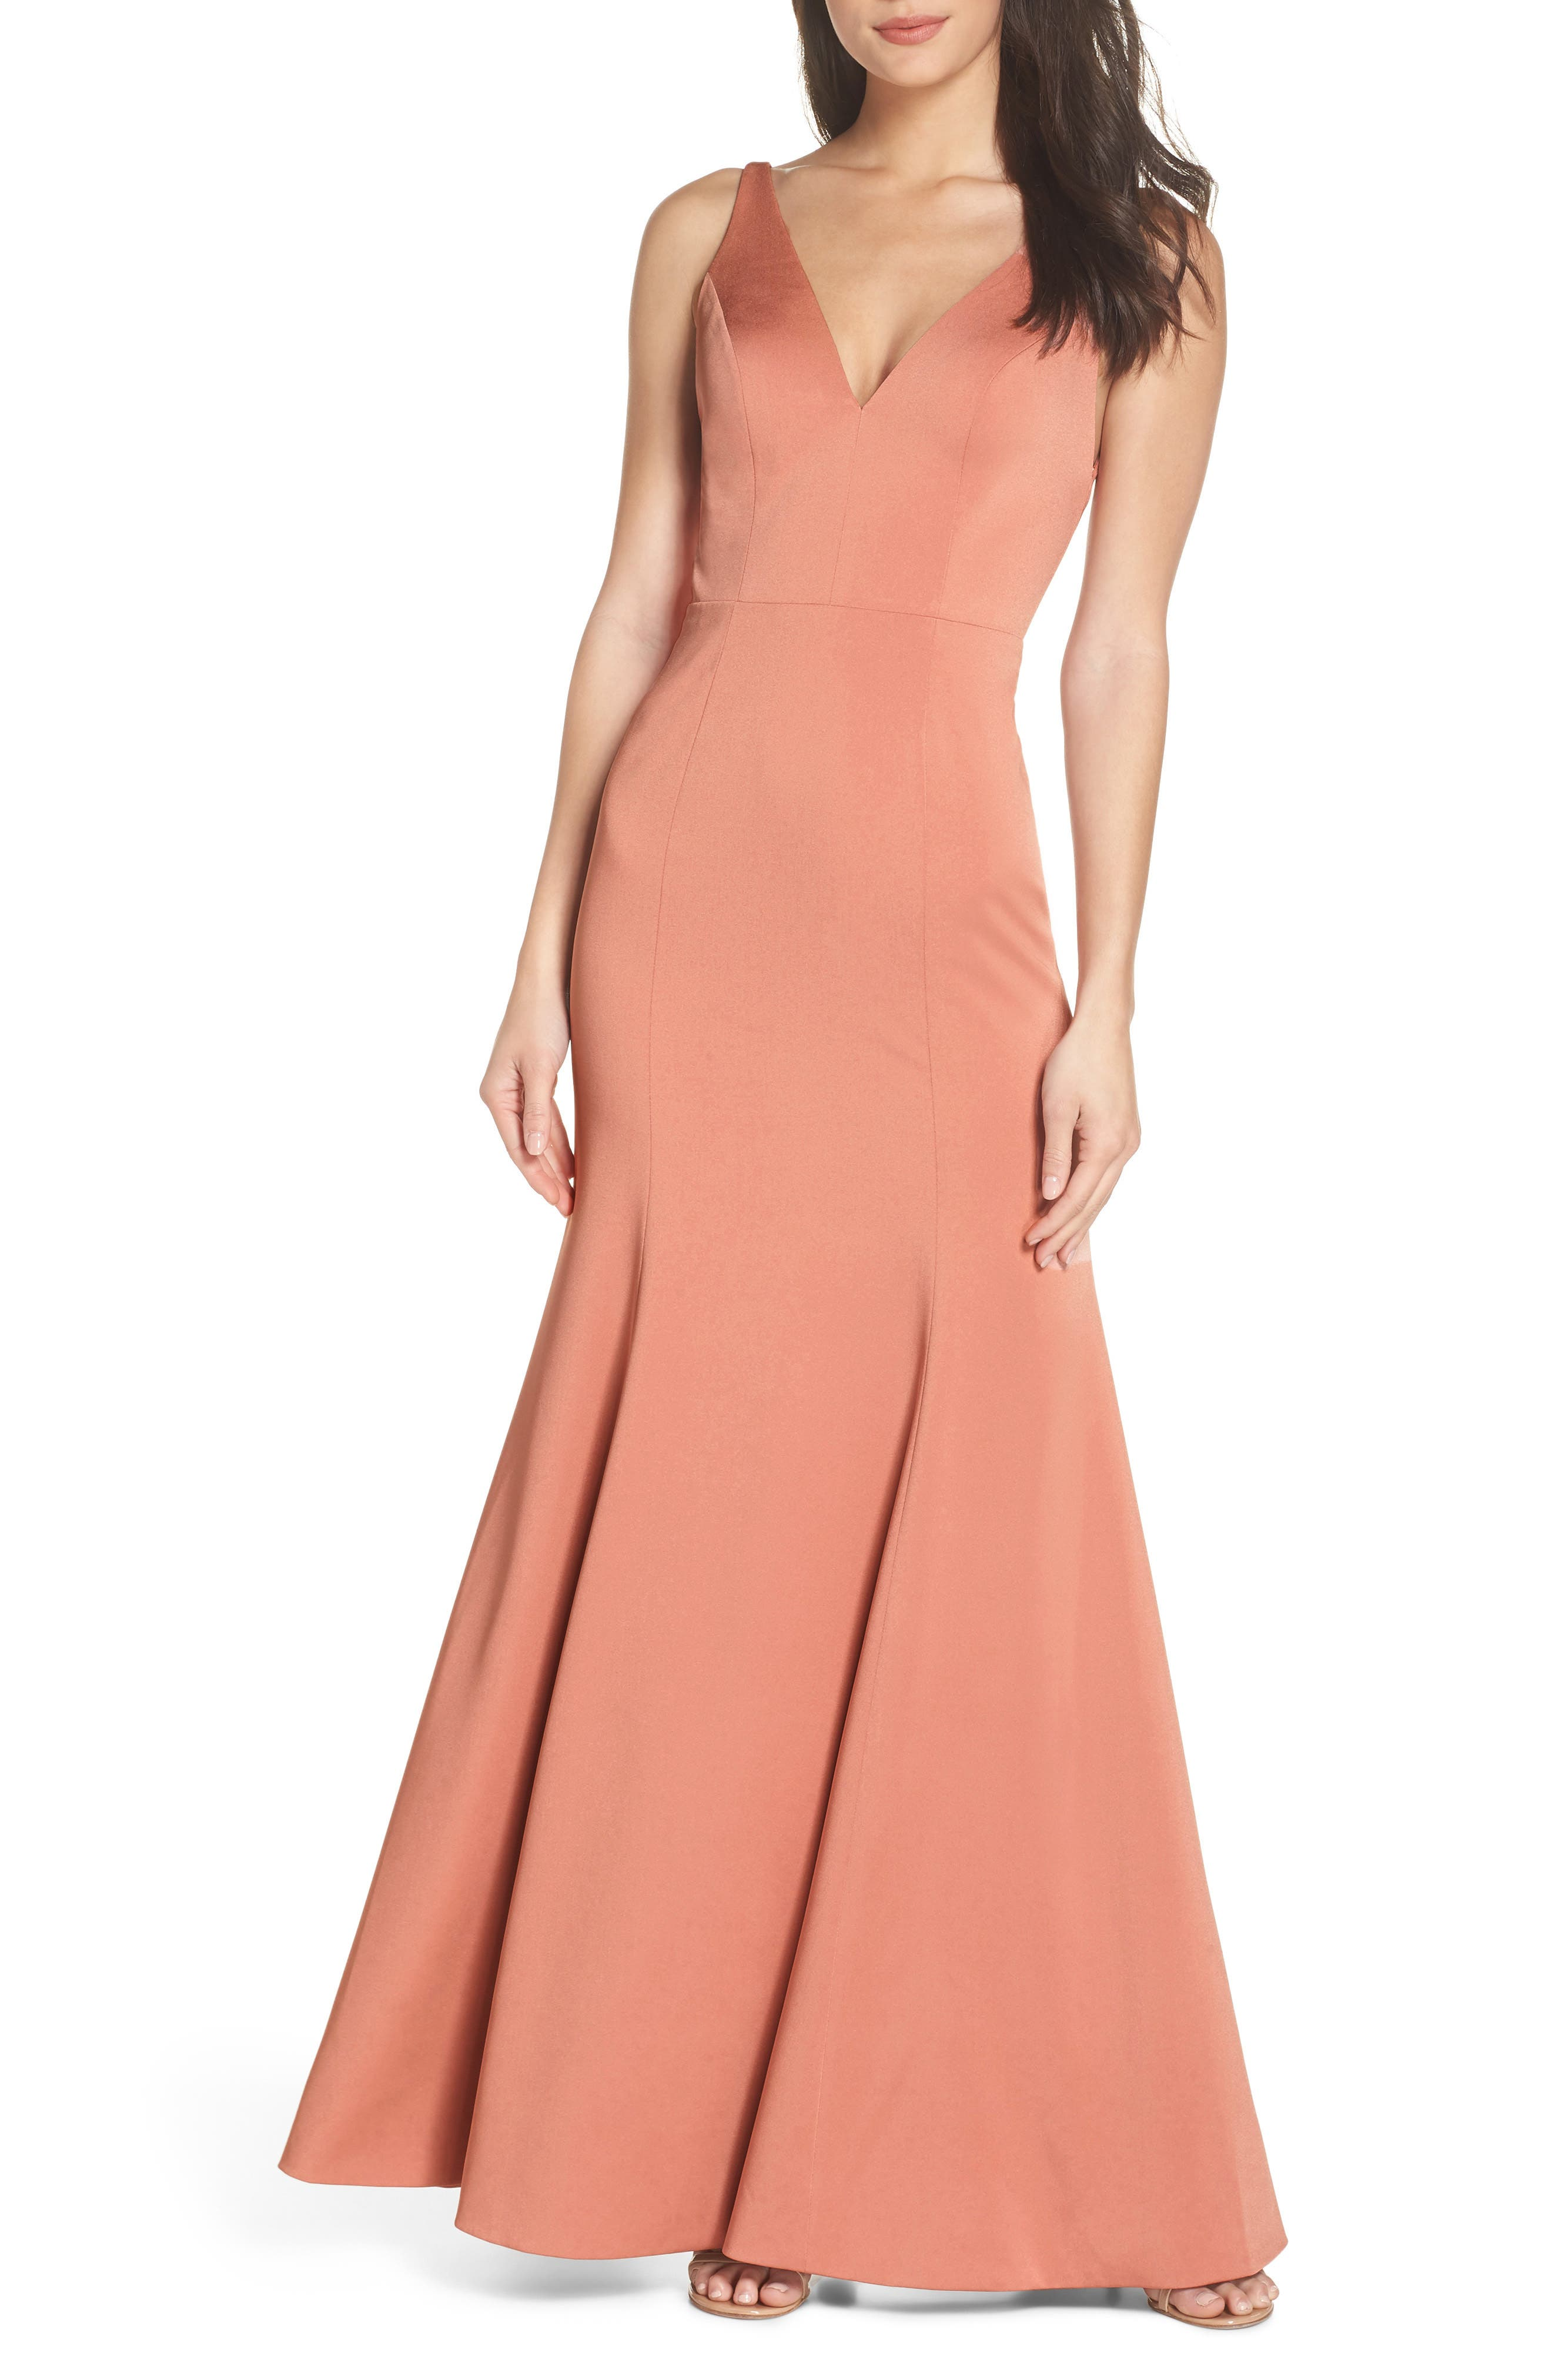 Jade Luxe Crepe V-Neck Gown,                             Main thumbnail 1, color,                             Sedona Sunset